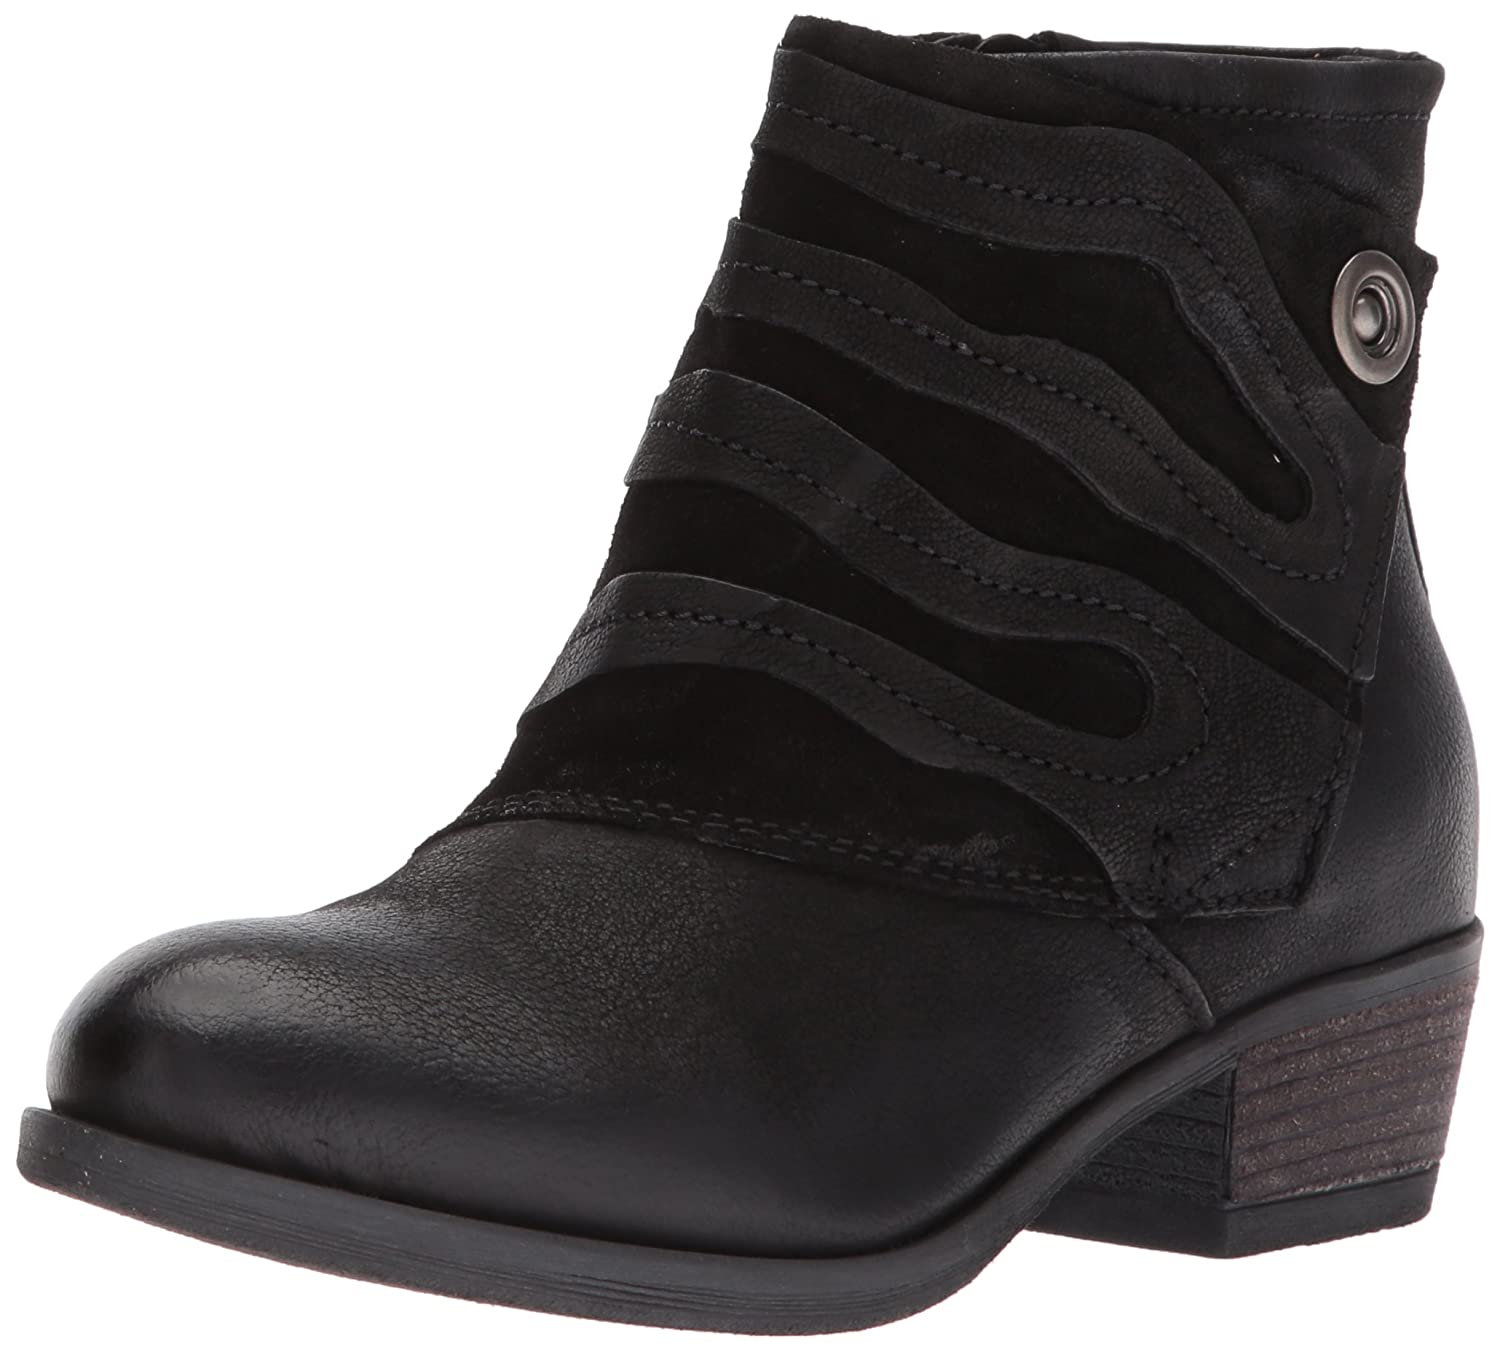 Miz Mooz Women's Benny Ankle Boot B06XS1K45R 38 M EU (7.5-8 US)|Black